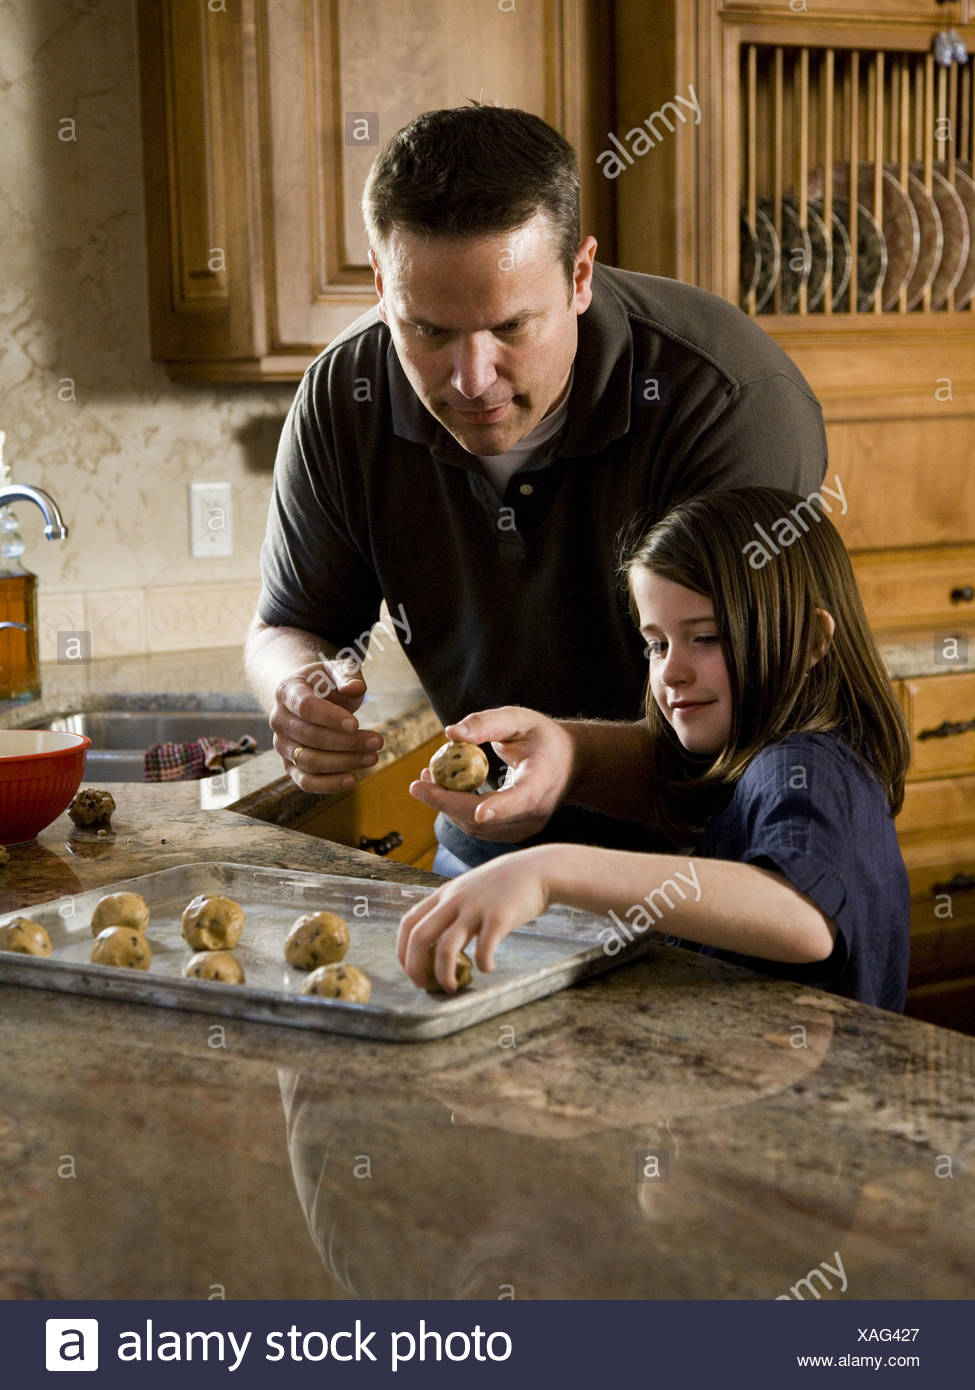 Girl in kitchen with man baking cookies - Stock Image